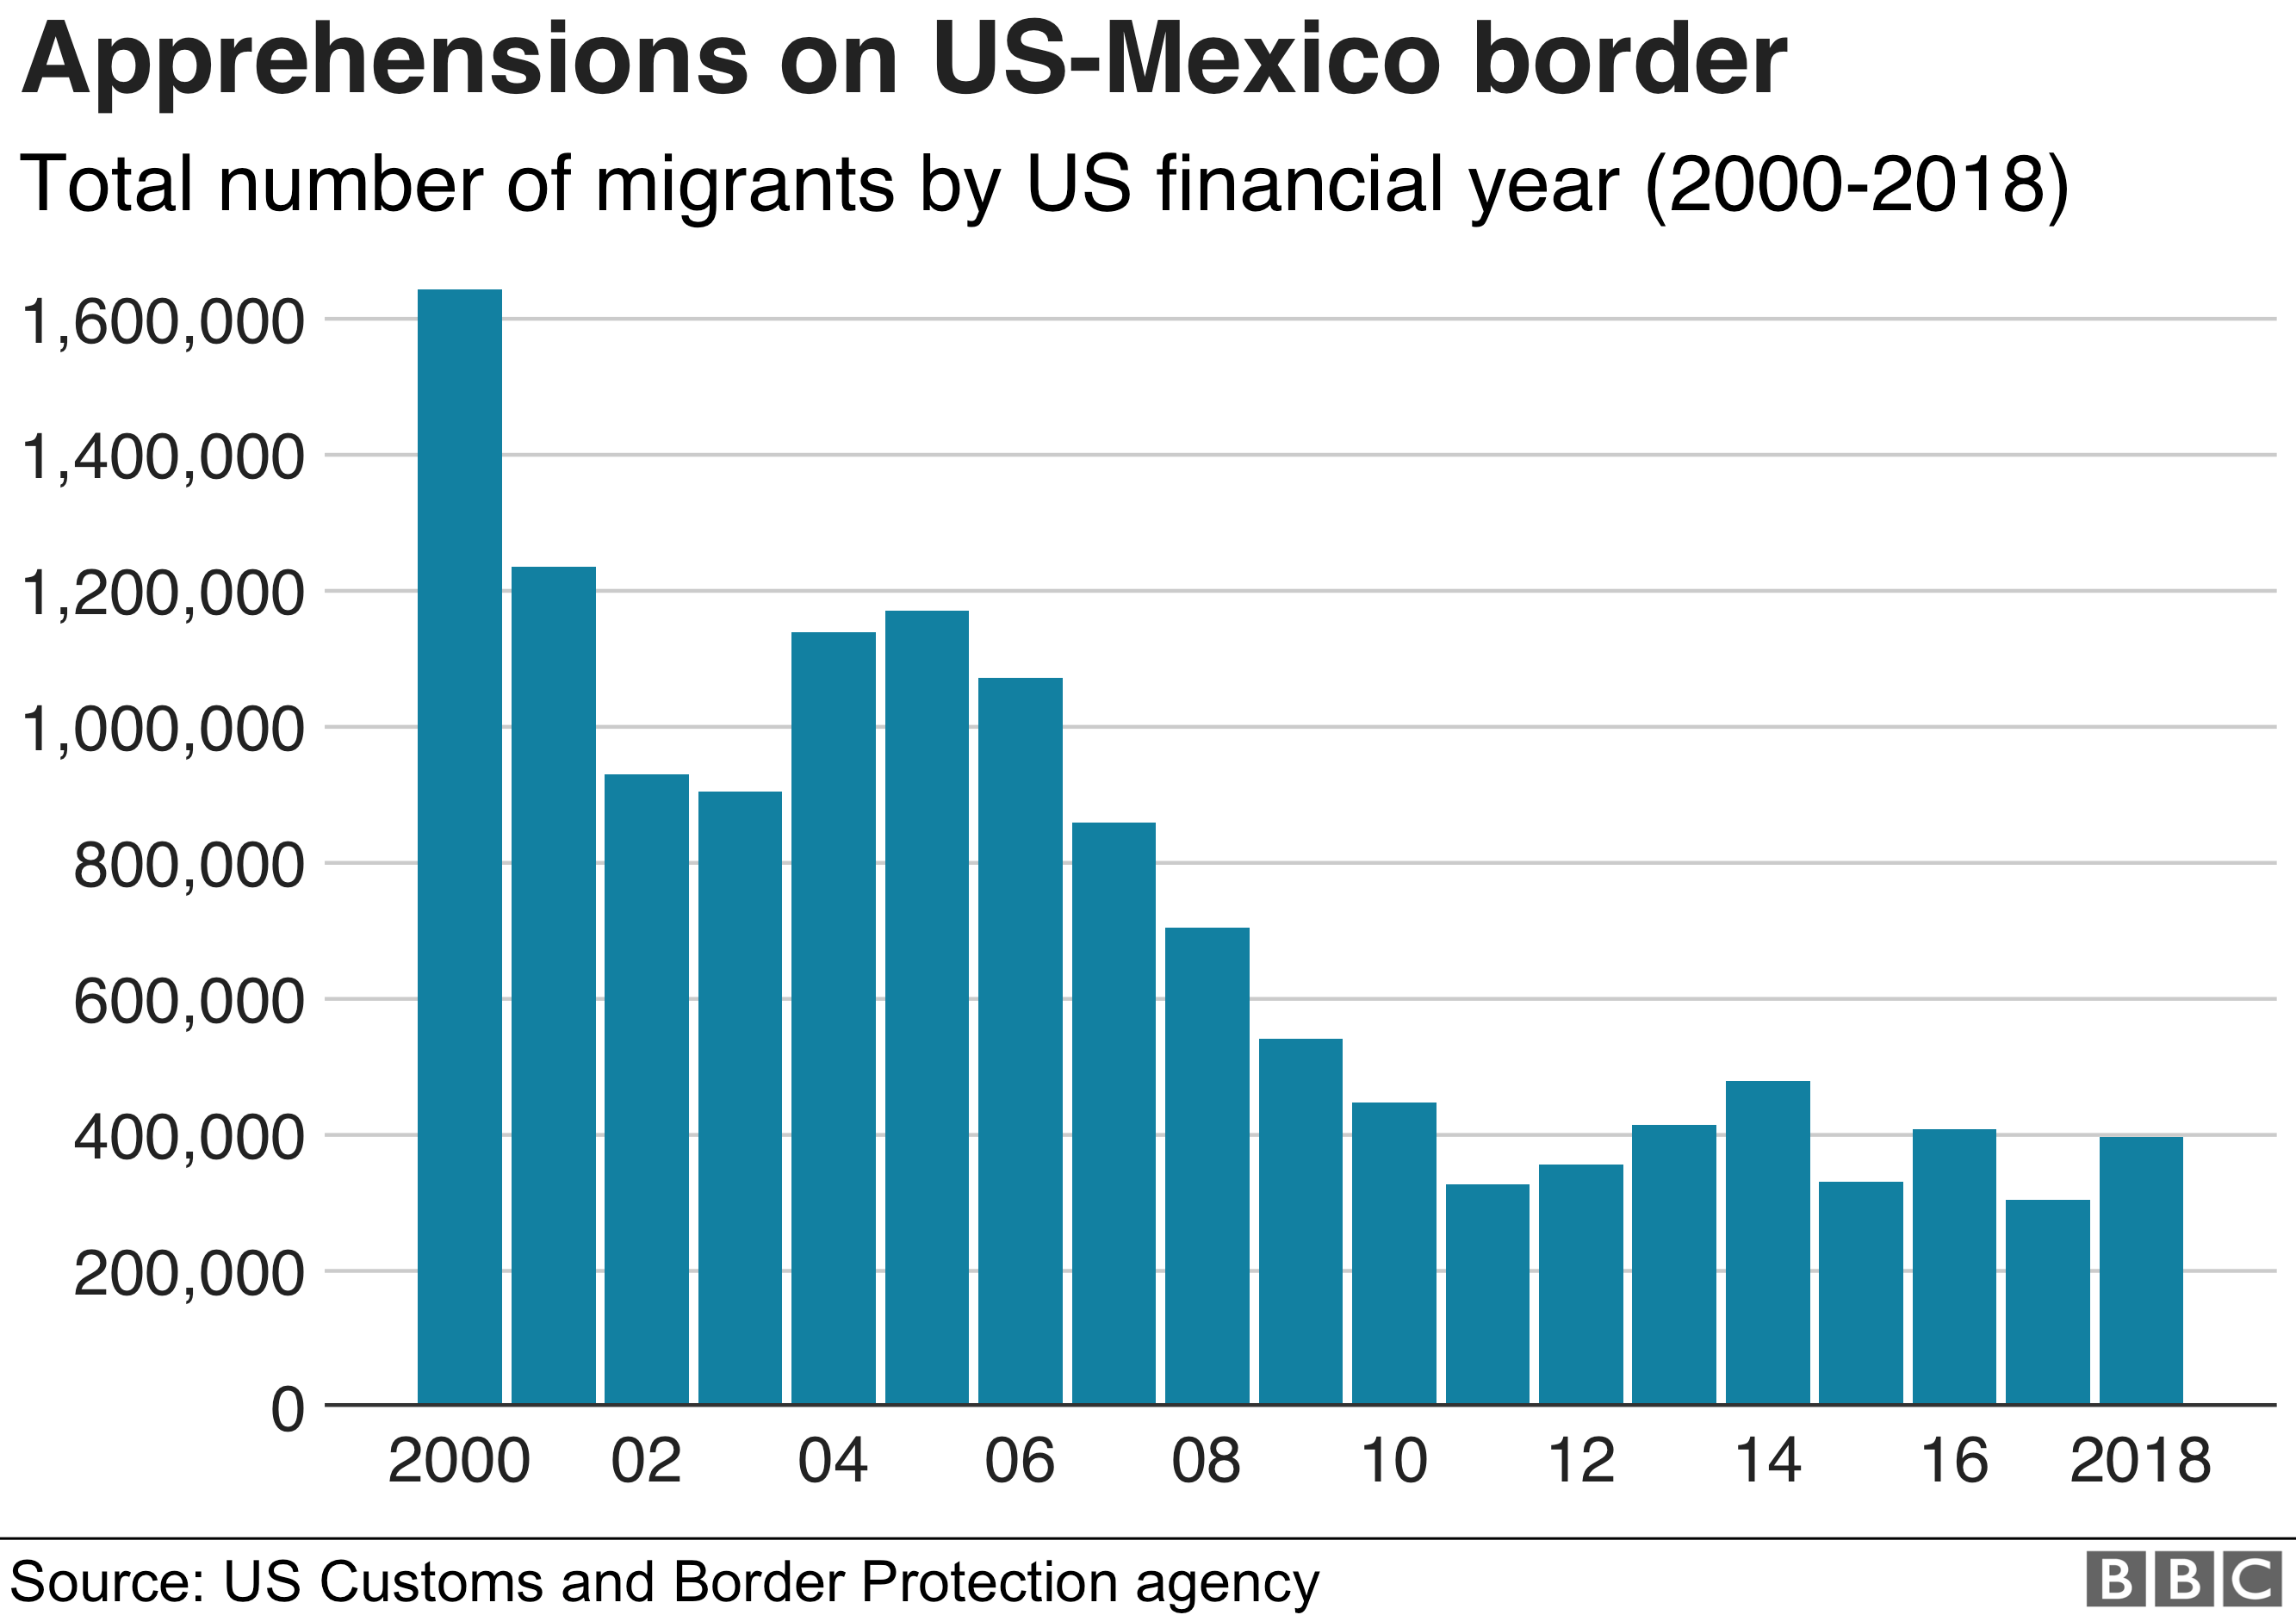 Apprehensions on US-Mexico border